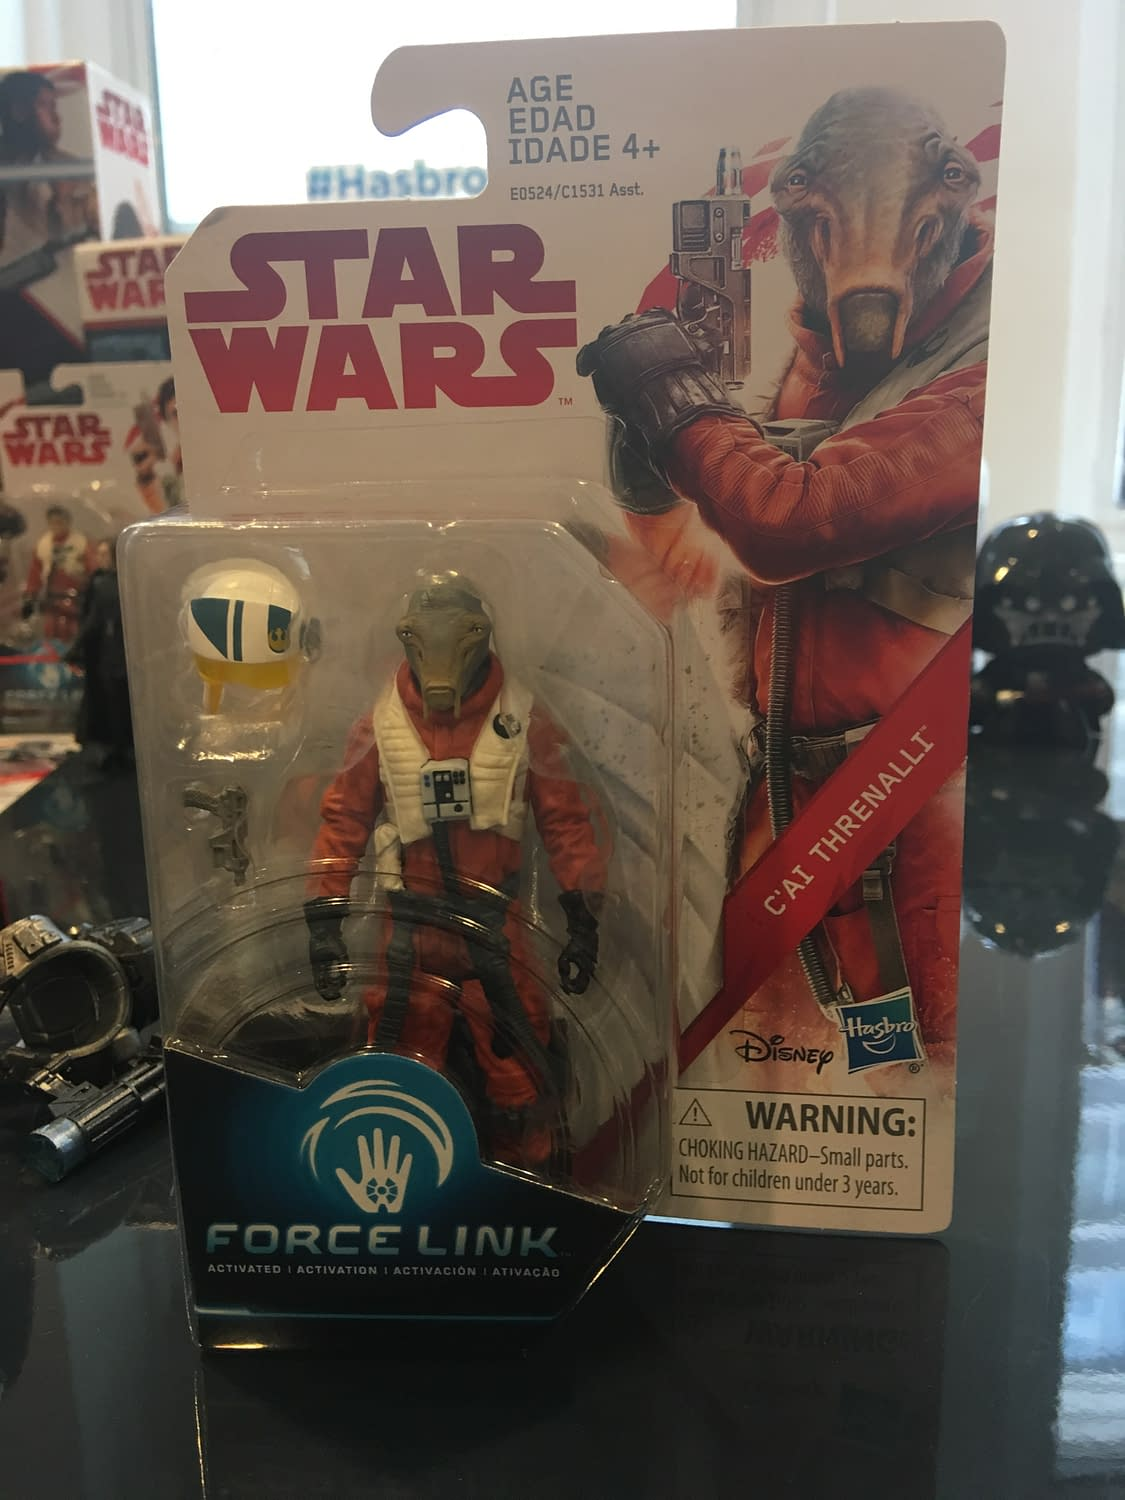 Hasbro Reveals New Star Wars Products At NYCC, Including Mighty Muggs!